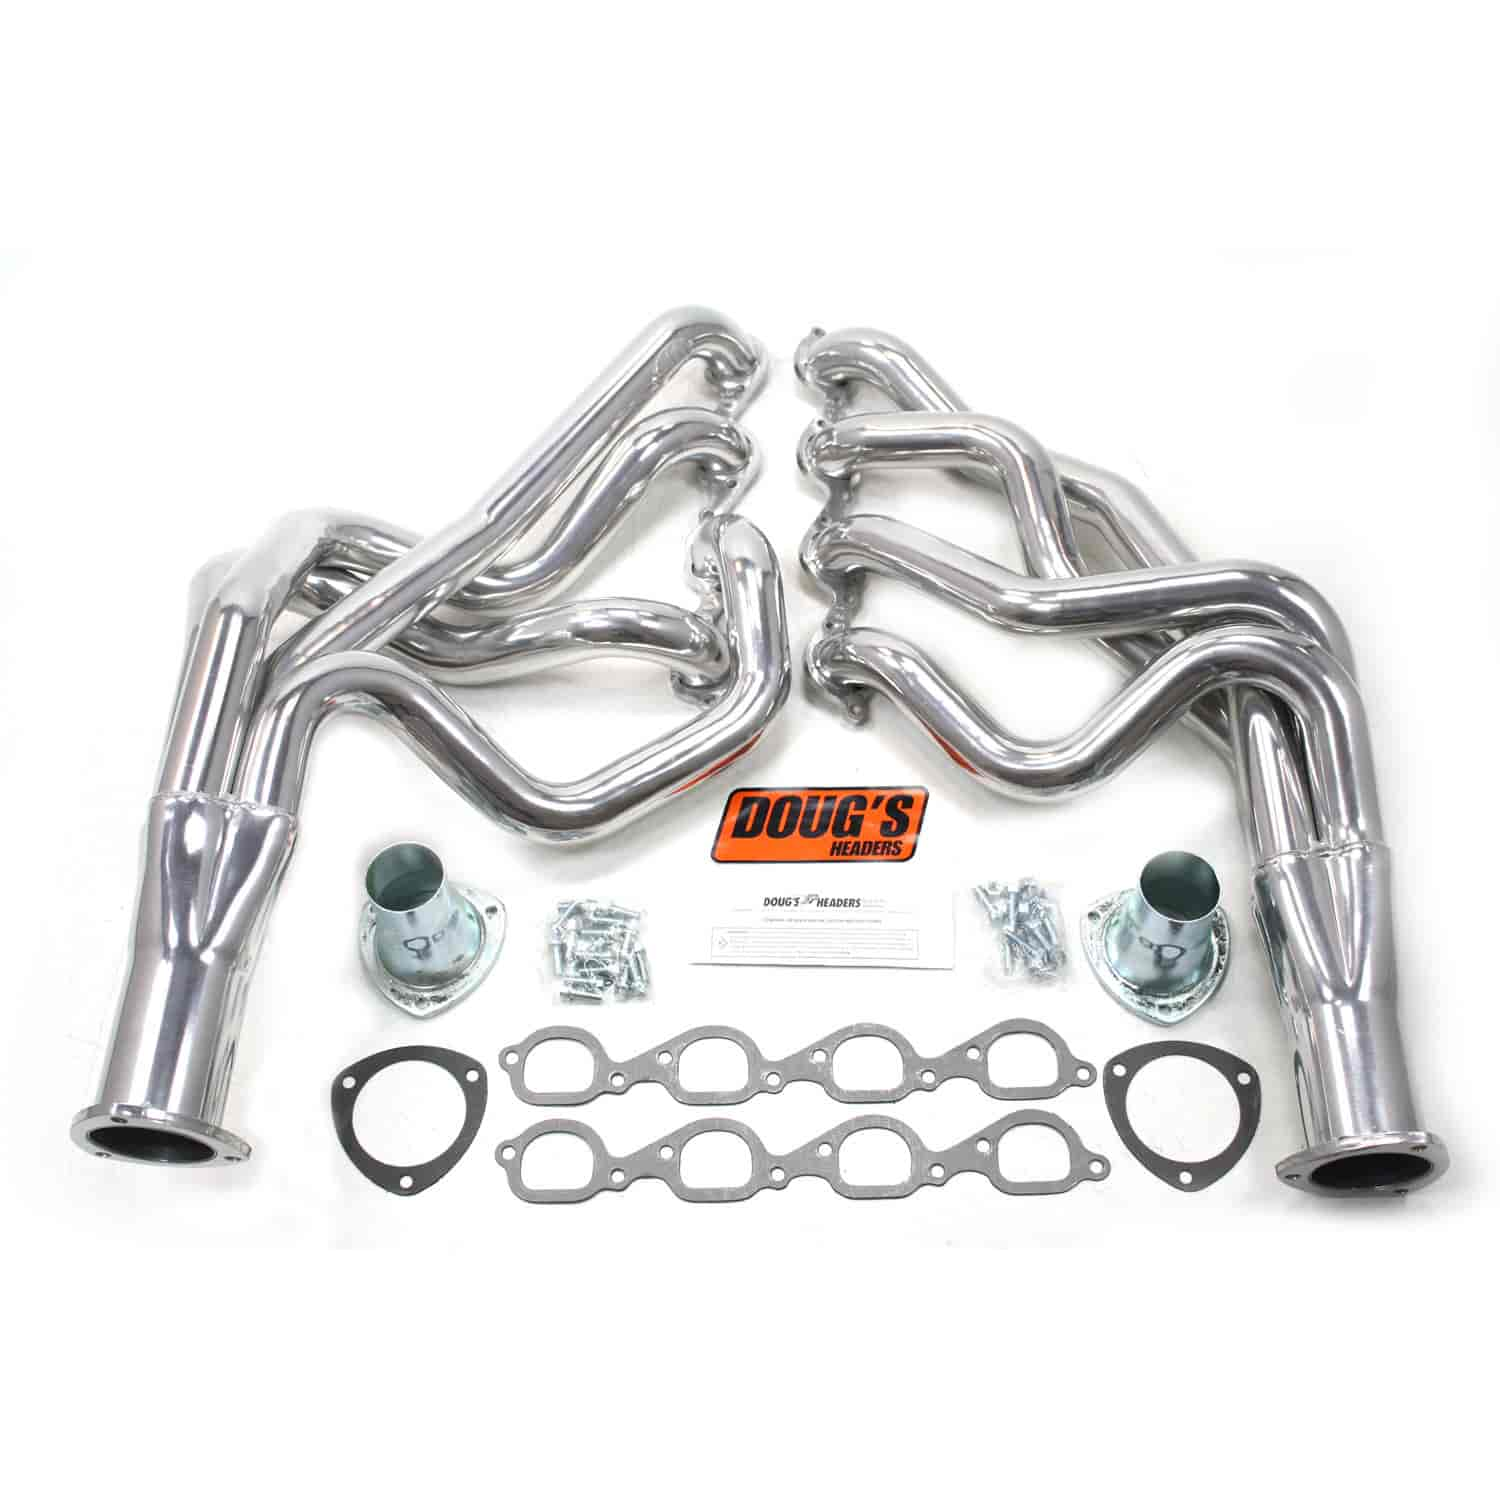 Doug S Headers D321 Metallic Ceramic Coated Headers